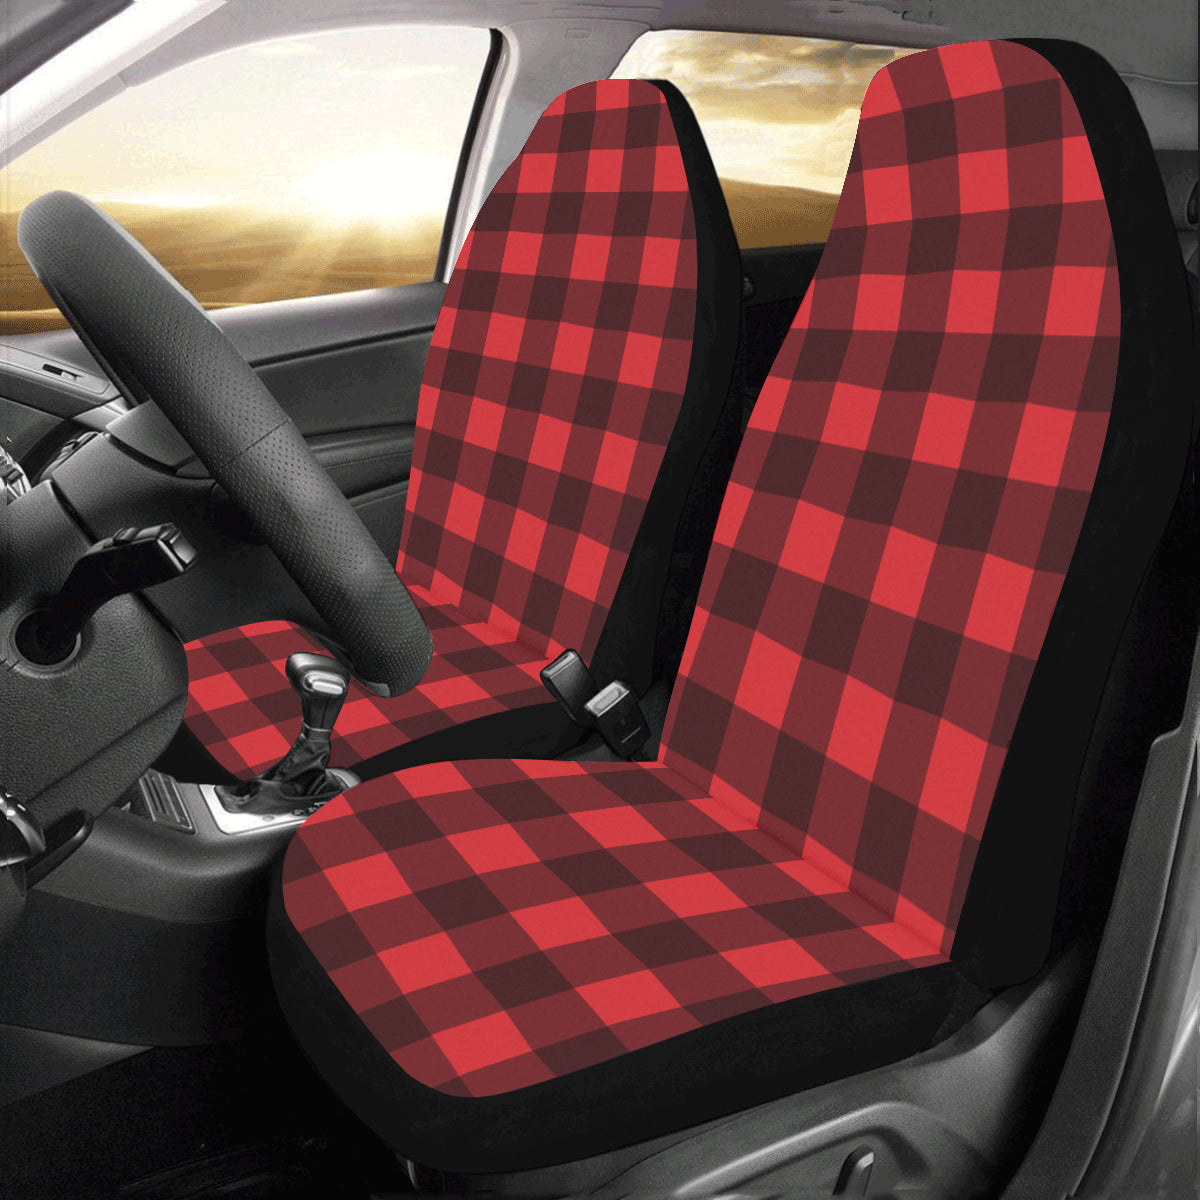 Buffalo Plaid Car Seat Covers 2 pc, Black and Red Check Lumberjack Front Seat Covers, Car SUV Seat Protector Accessory - Starcove Design